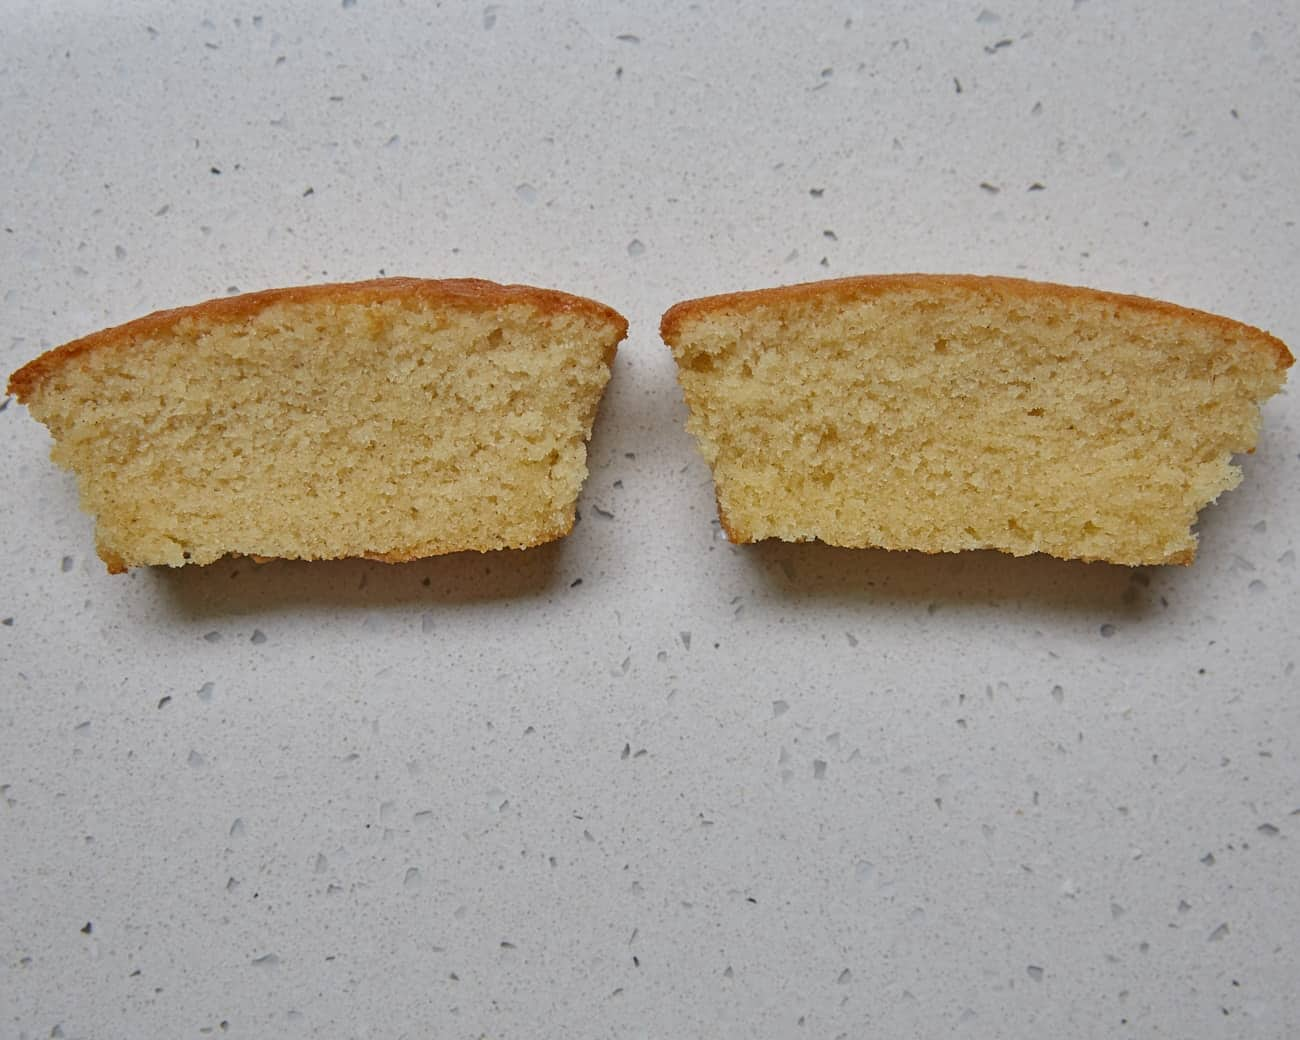 Cross sections of two small cakes using homemade self-raising flour and shop-bought self-raising flour